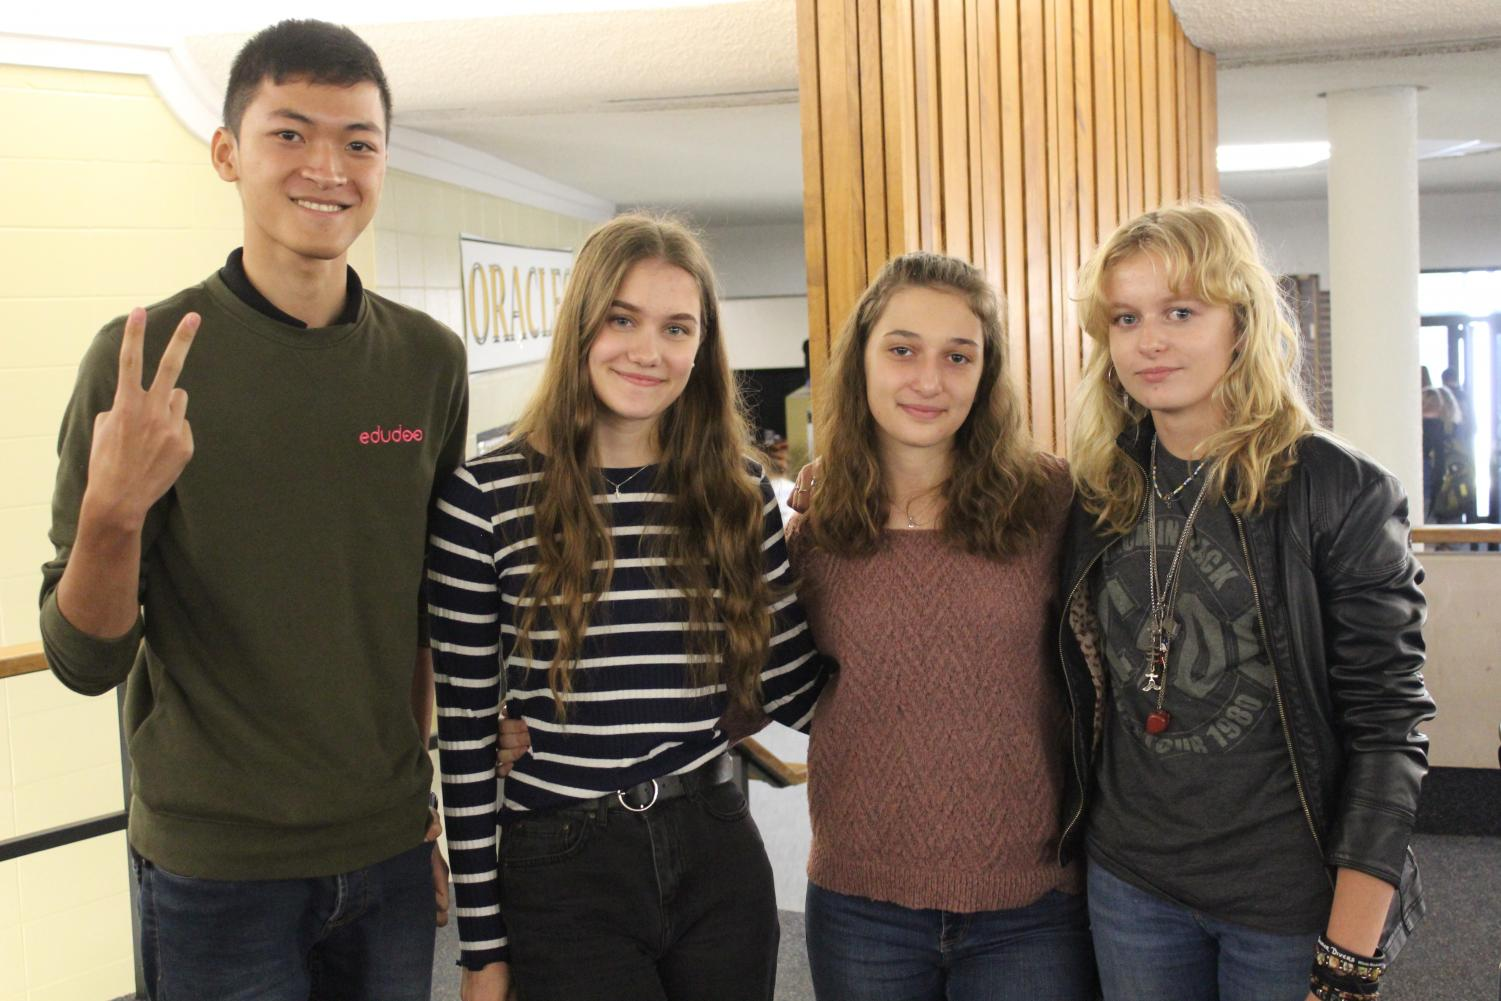 This year's exchange students pose for a photo. From left: Pat Ruanglapanan (Thailand), Vega Kangasmaki (Finland), Sarah Kase (Germany), Miles Benarczyk (Poland)